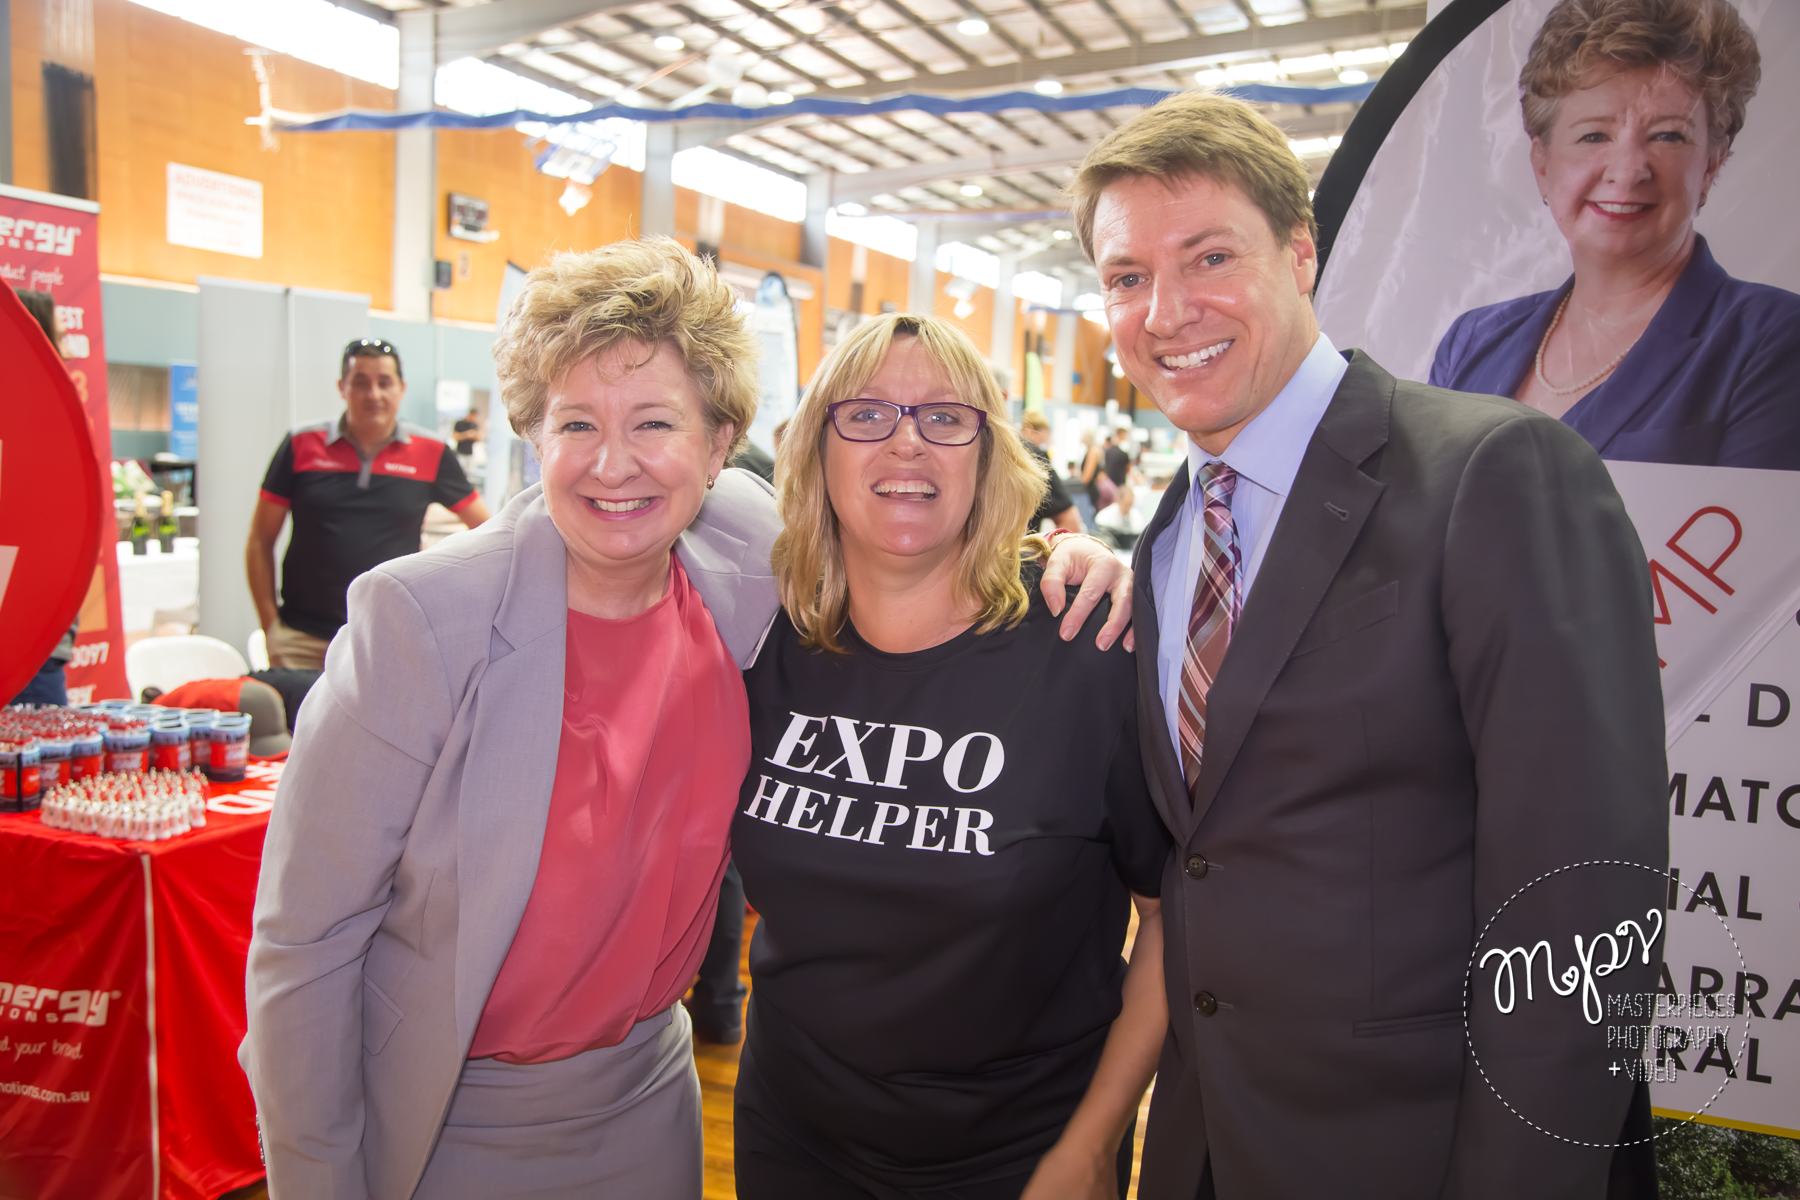 Business Expos   Brisbane   Gold Coast   Small Business Expos   Sbe Bne 4